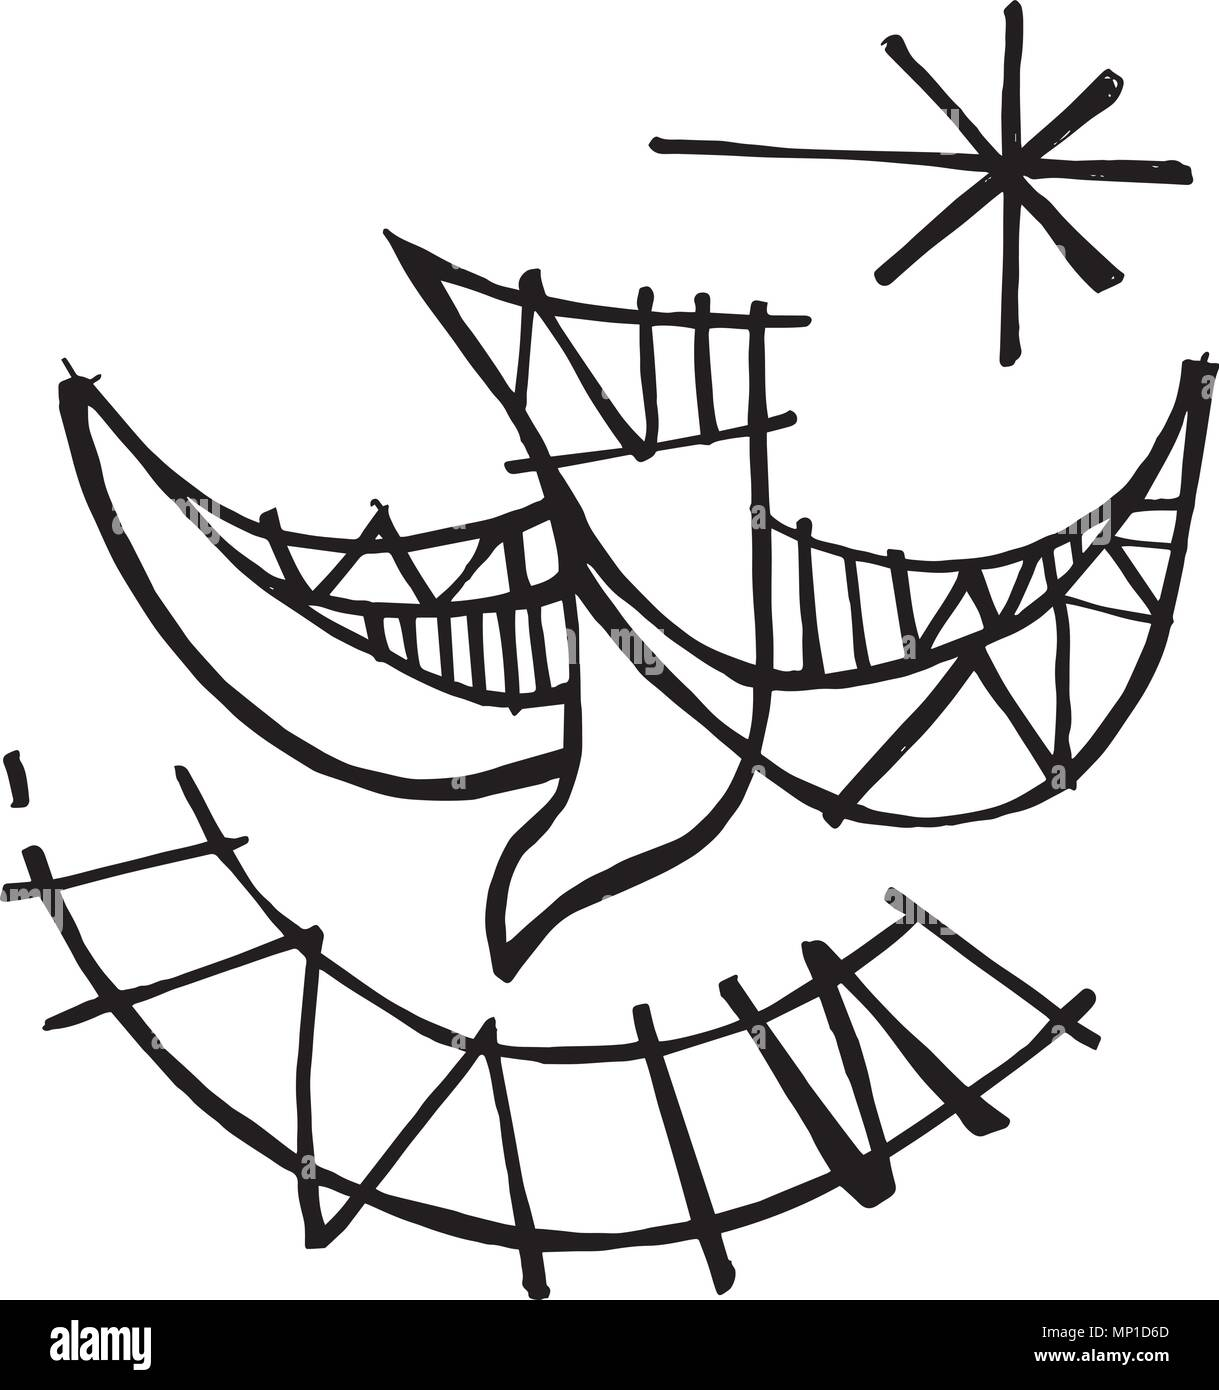 Hand Drawn Illustration Or Drawing Of A Christian Symbol Of The Holy